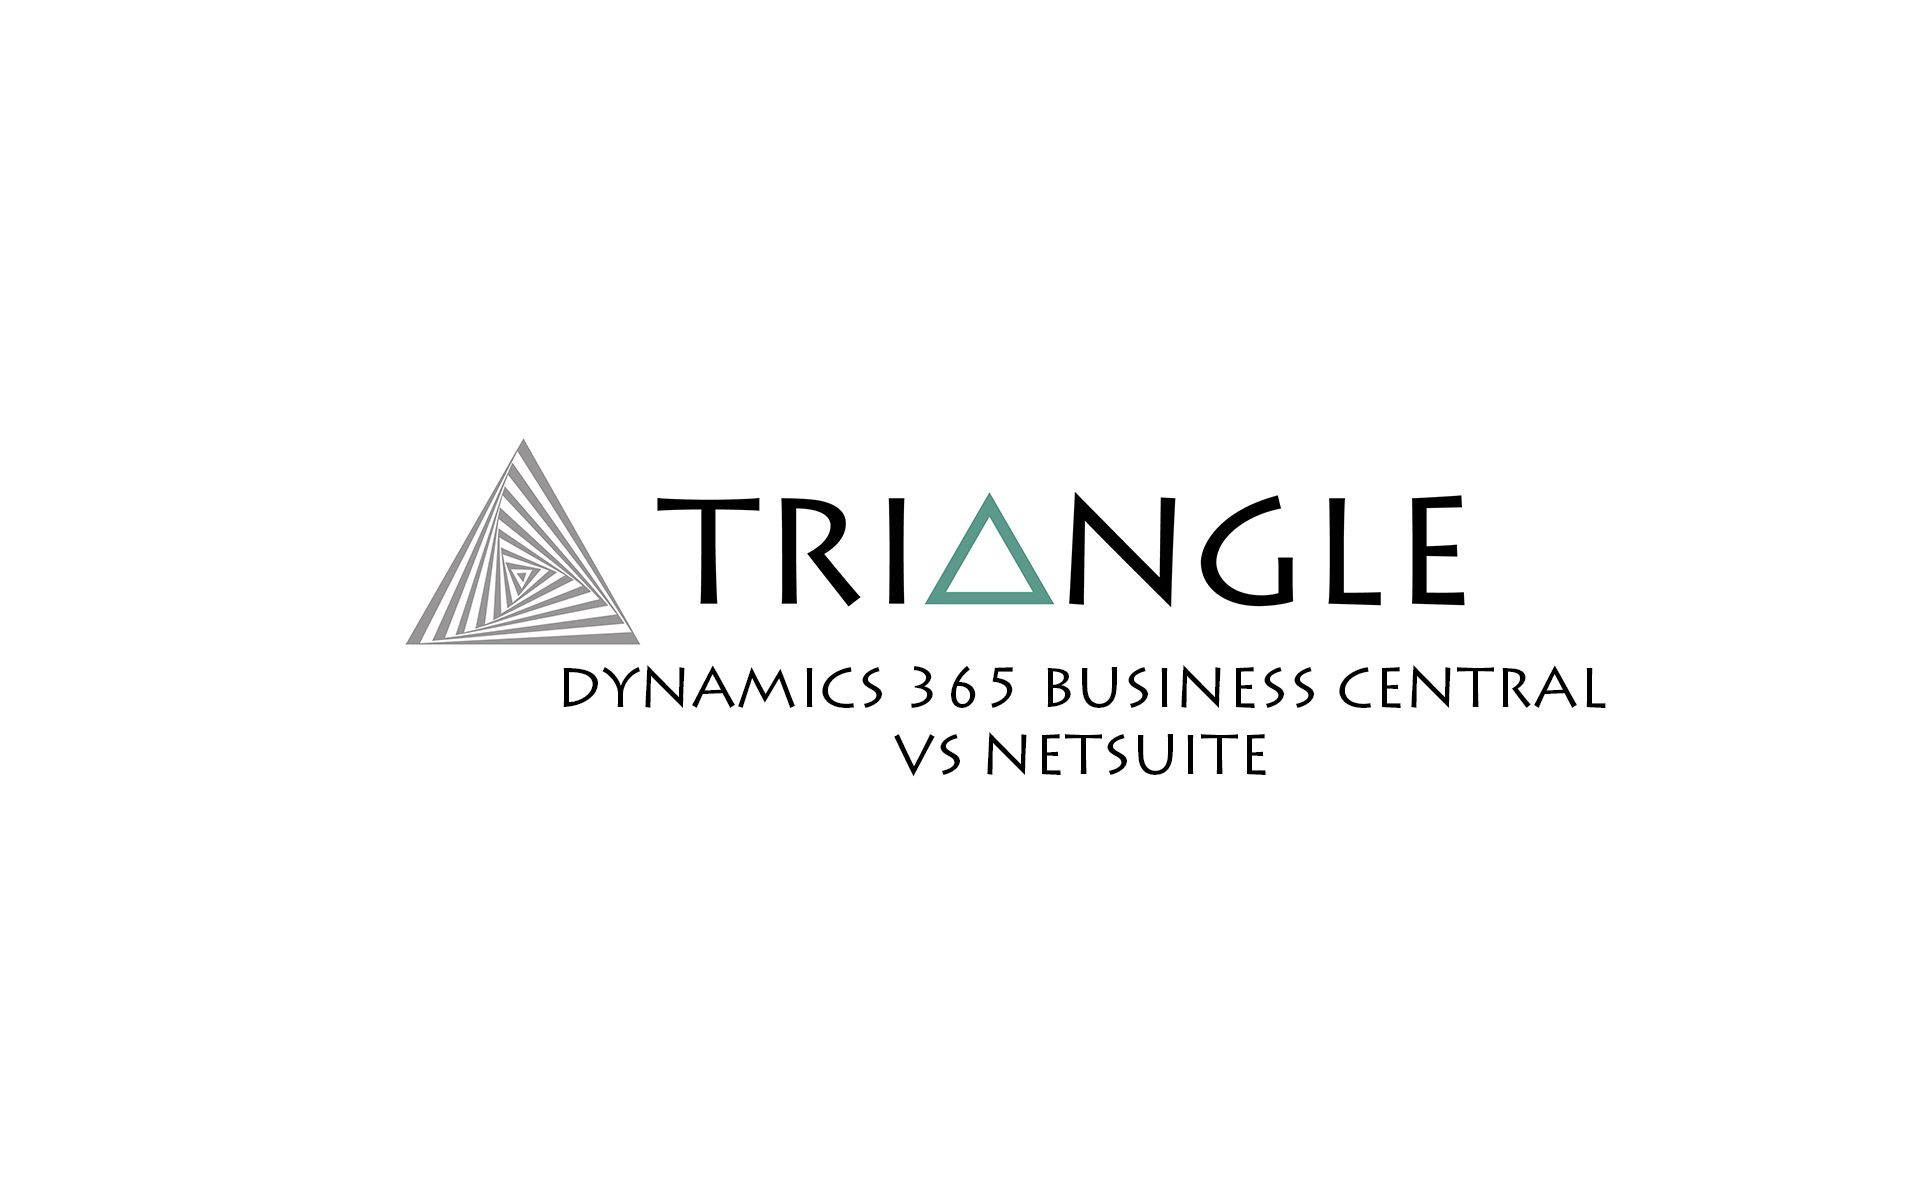 Dynamics 365 Business Central vs NetSuite